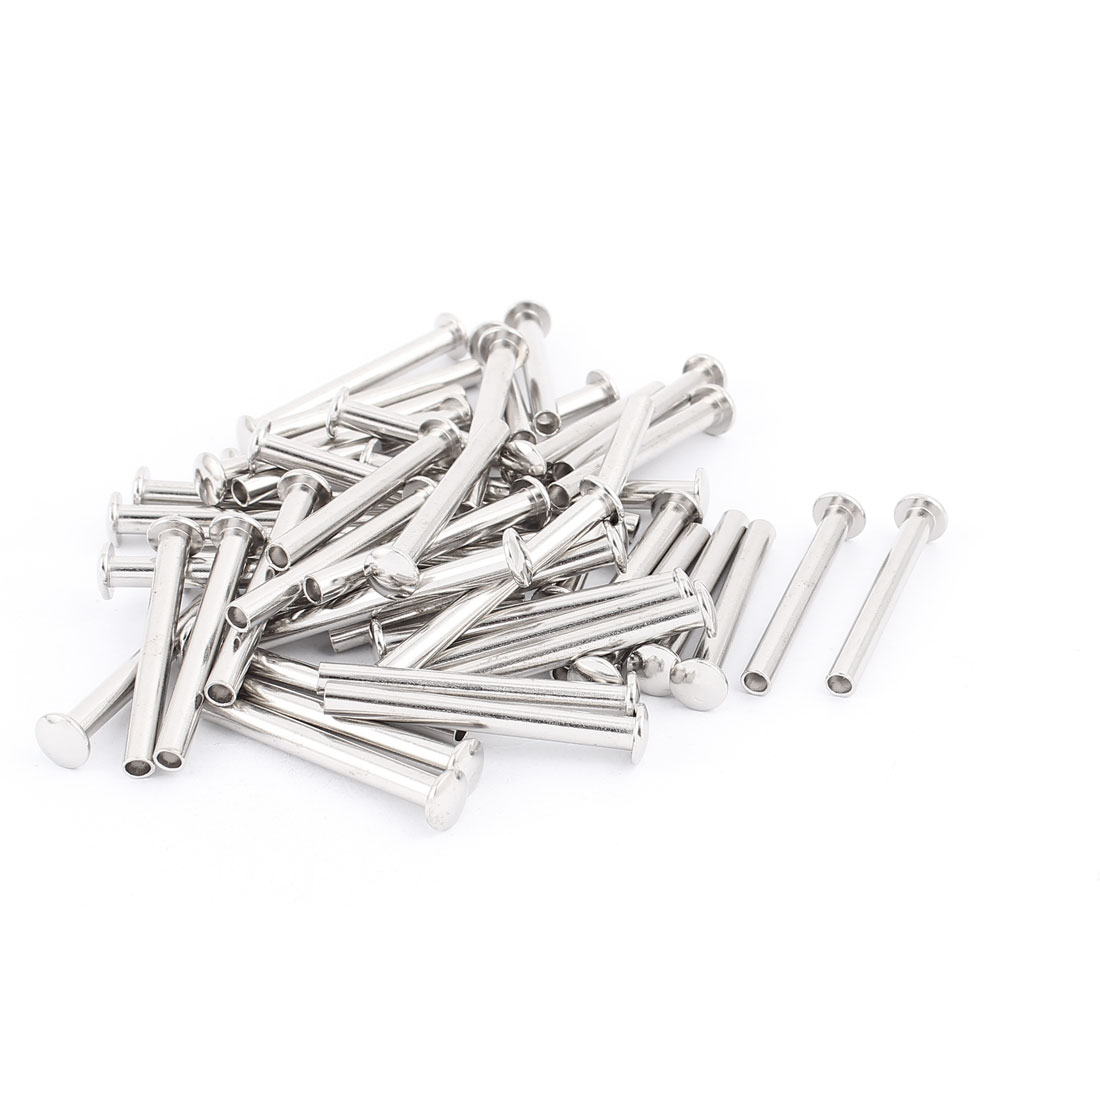 "50 Pcs 13/64"" x 1 25/32"" Nickel Plated Oval Head Semi-Tubular Rivets Silver Tone"